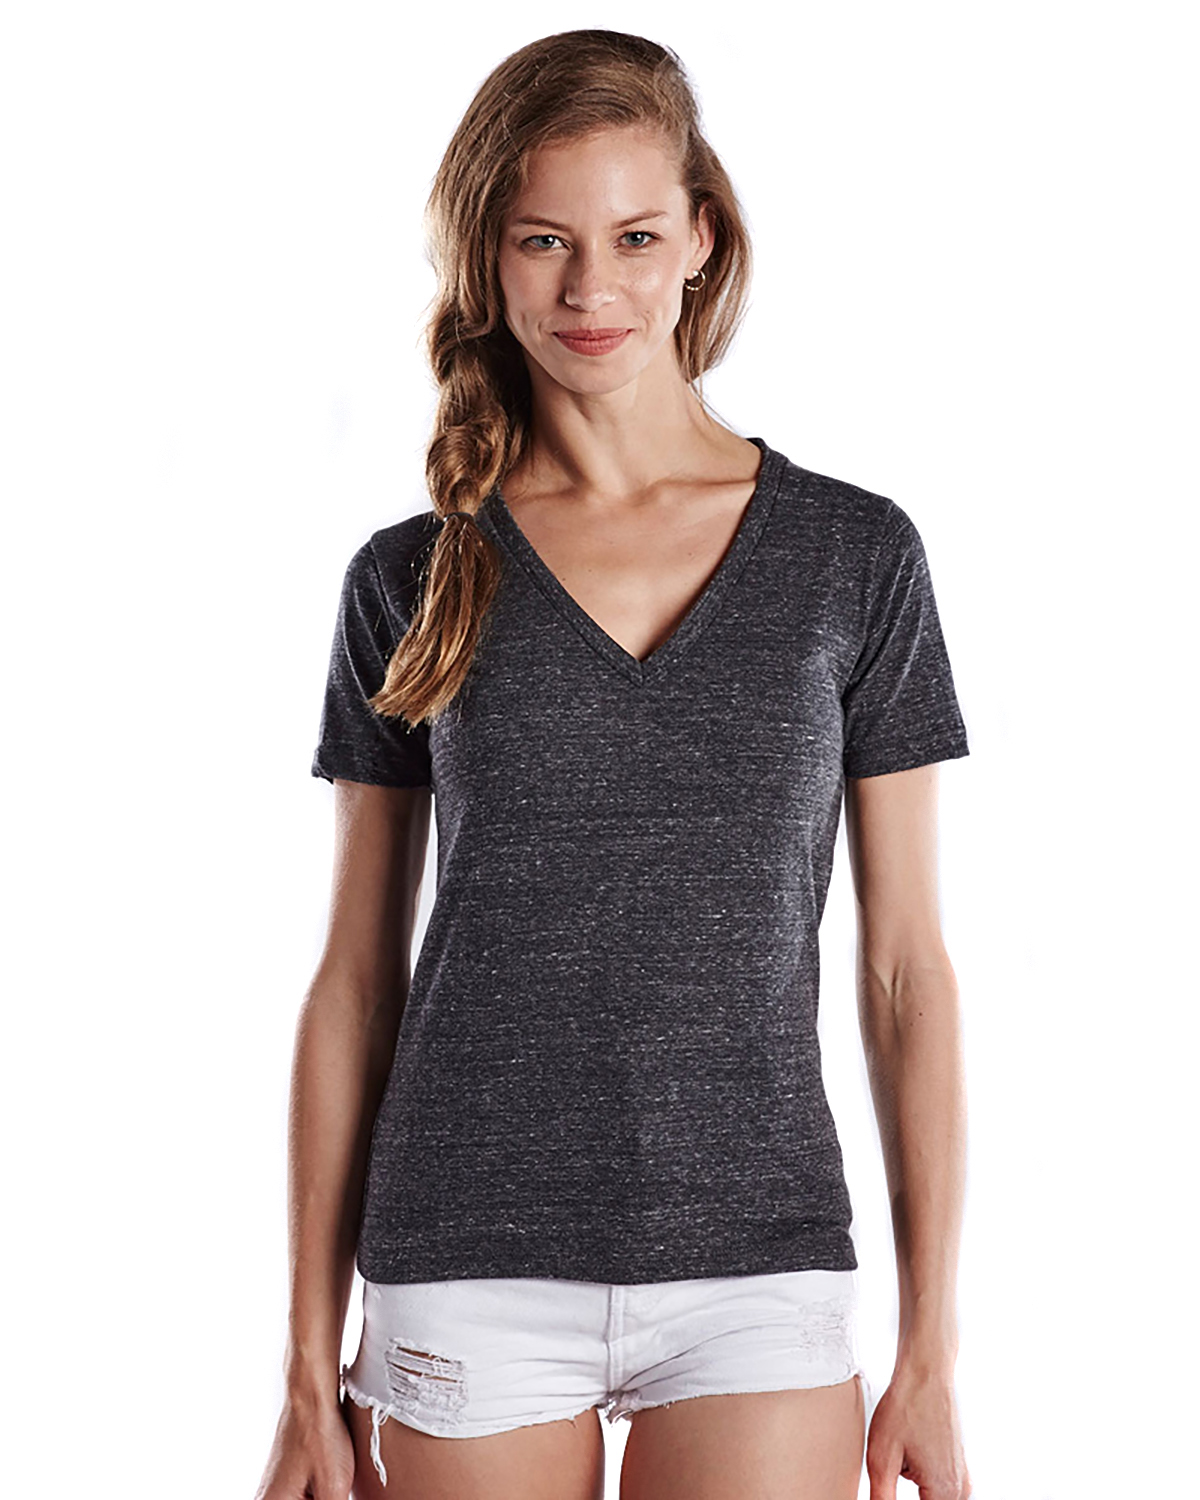 US Blanks US228 - Ladies' 4.9 oz. Short-Sleeve Triblend V-Neck